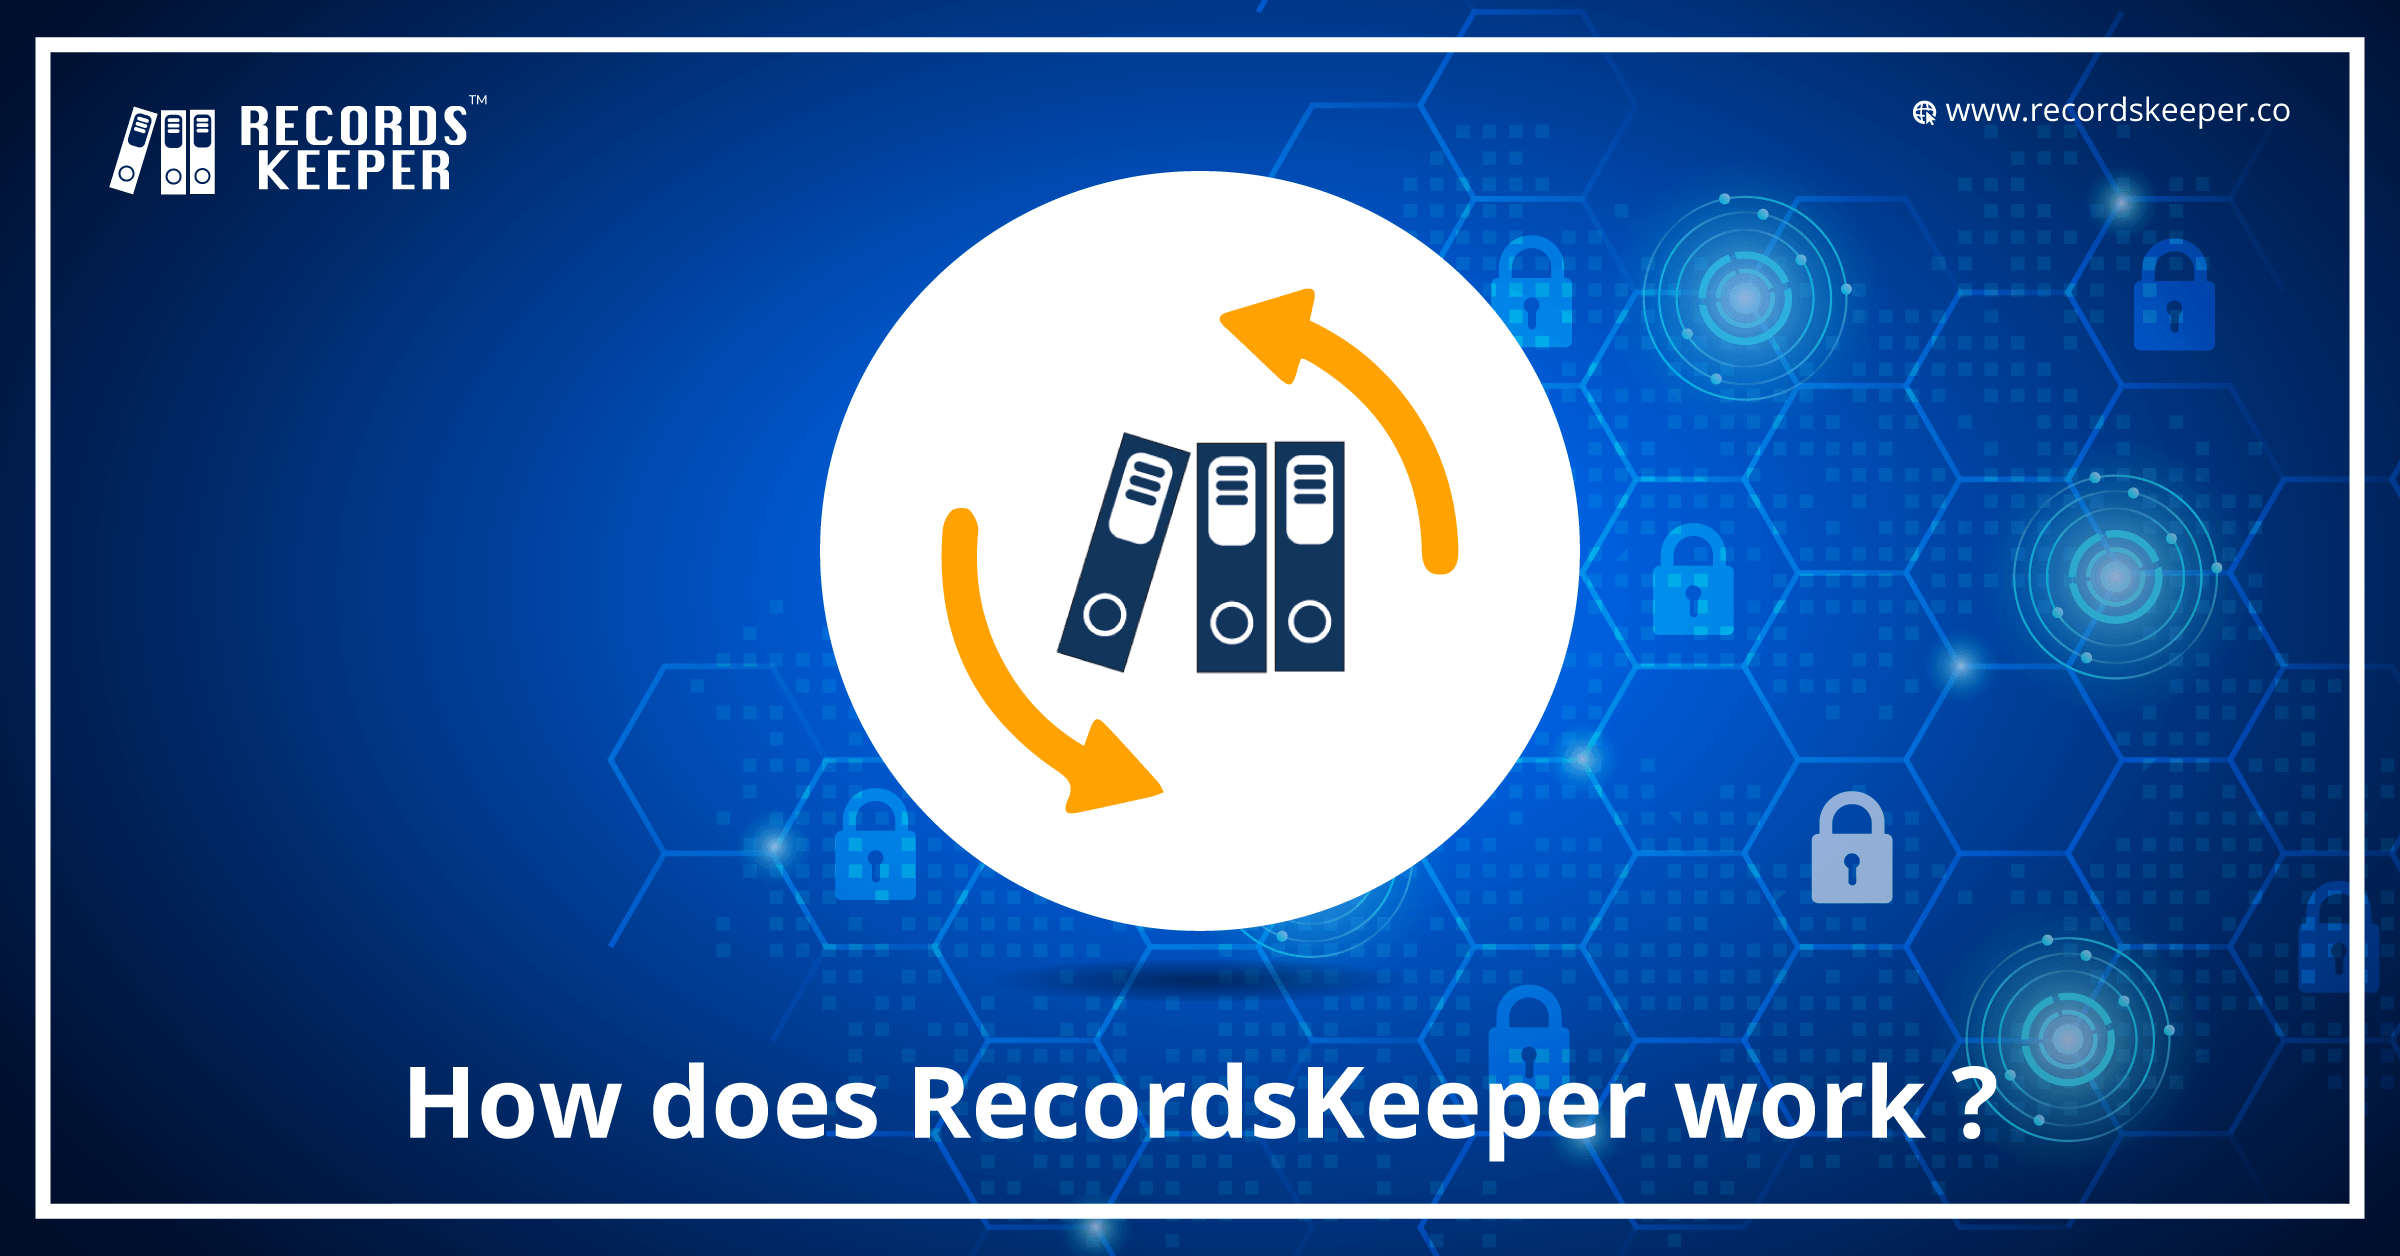 How does RecordsKeeper work?